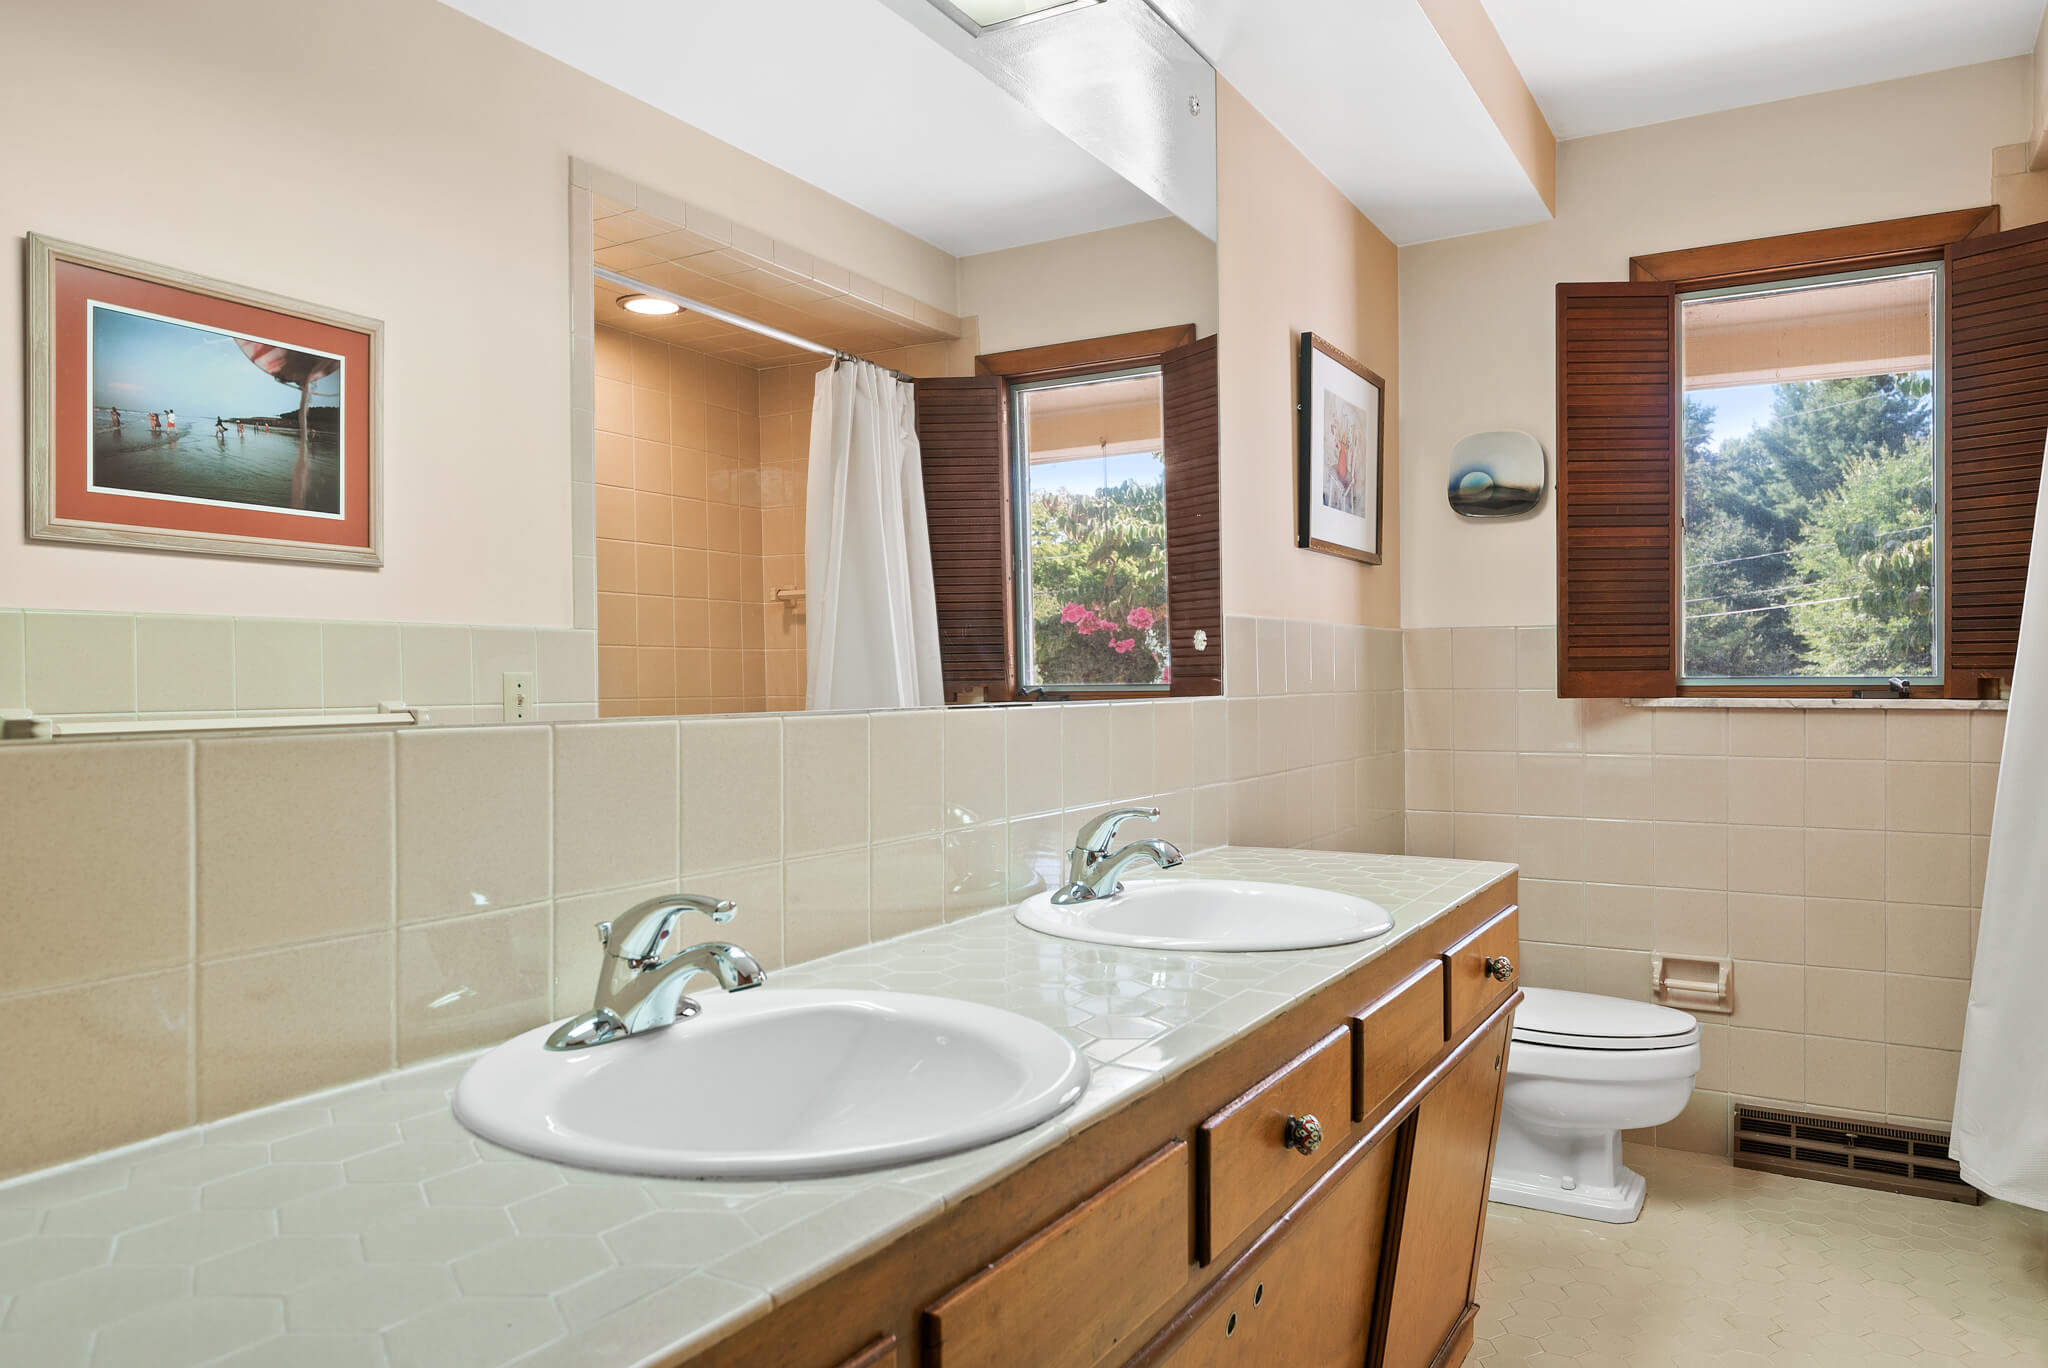 The guest bathroom with tile countertops